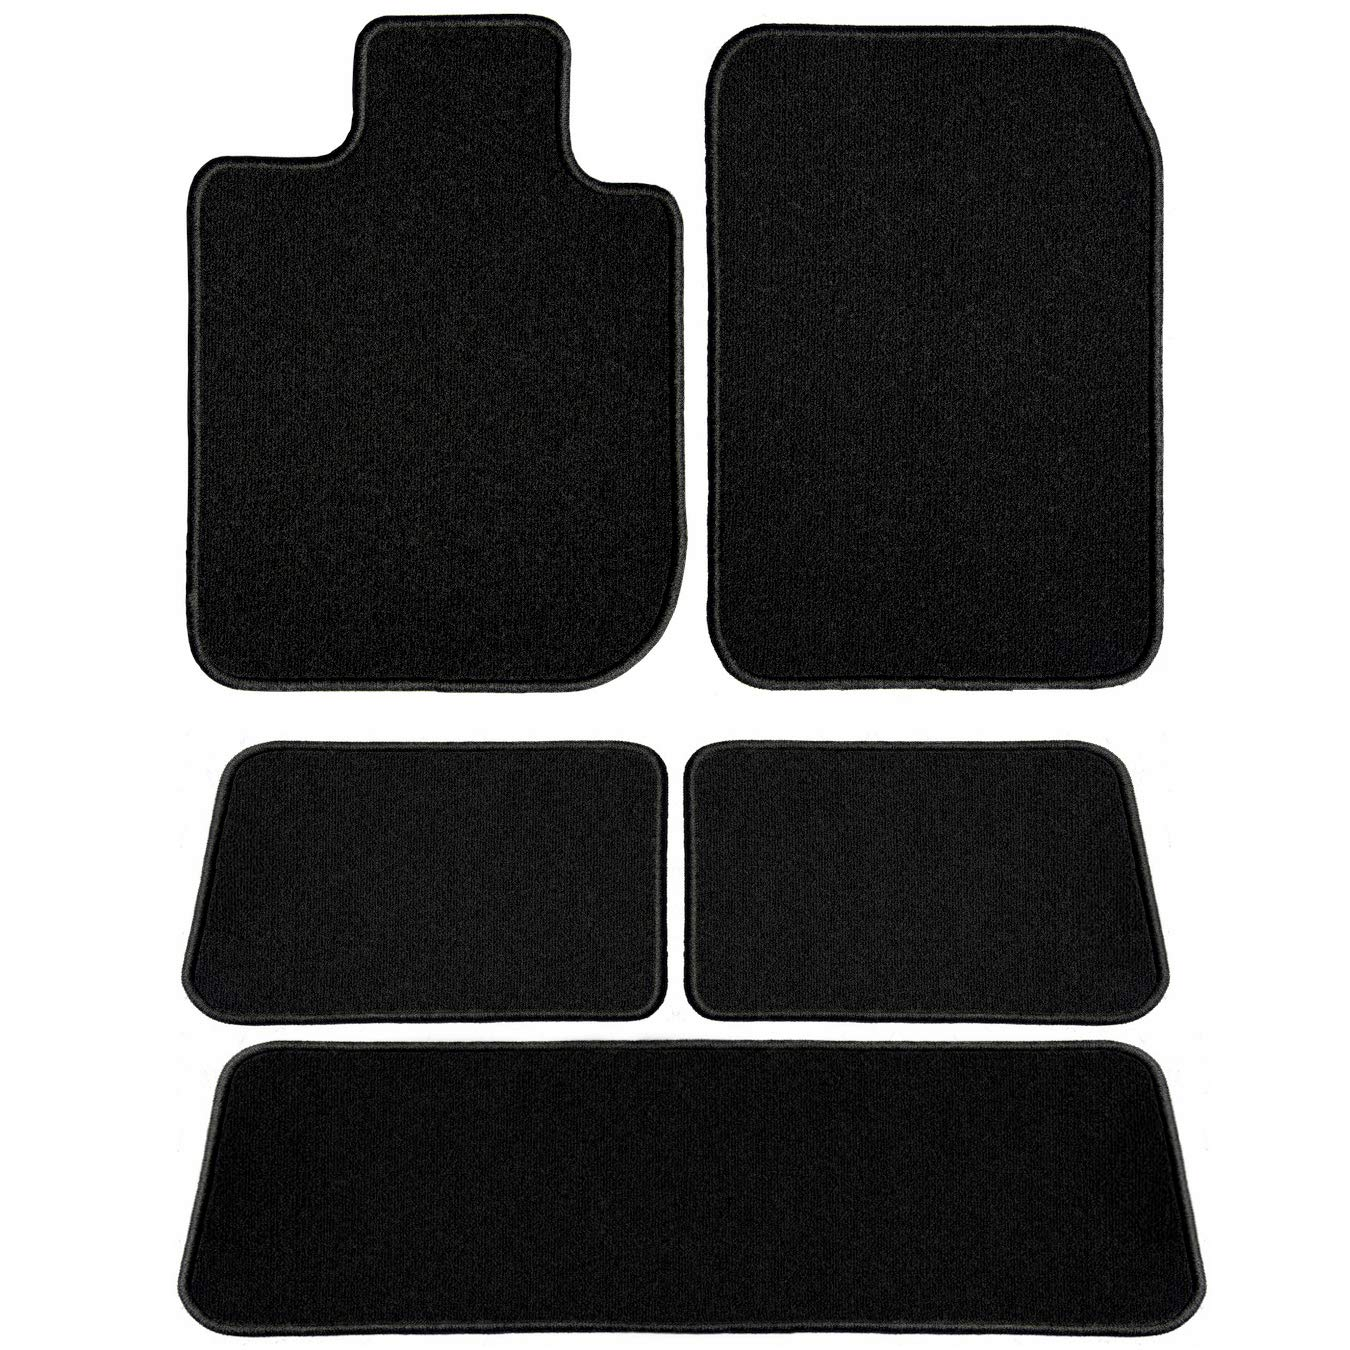 2nd /& 3rd Row Passenger 2011 Dodge Grand Caravan Black Driver 2009 5 Piece Floor 2010 GGBAILEY D60288-LSB-BLK Custom Fit Car Mats for 2008